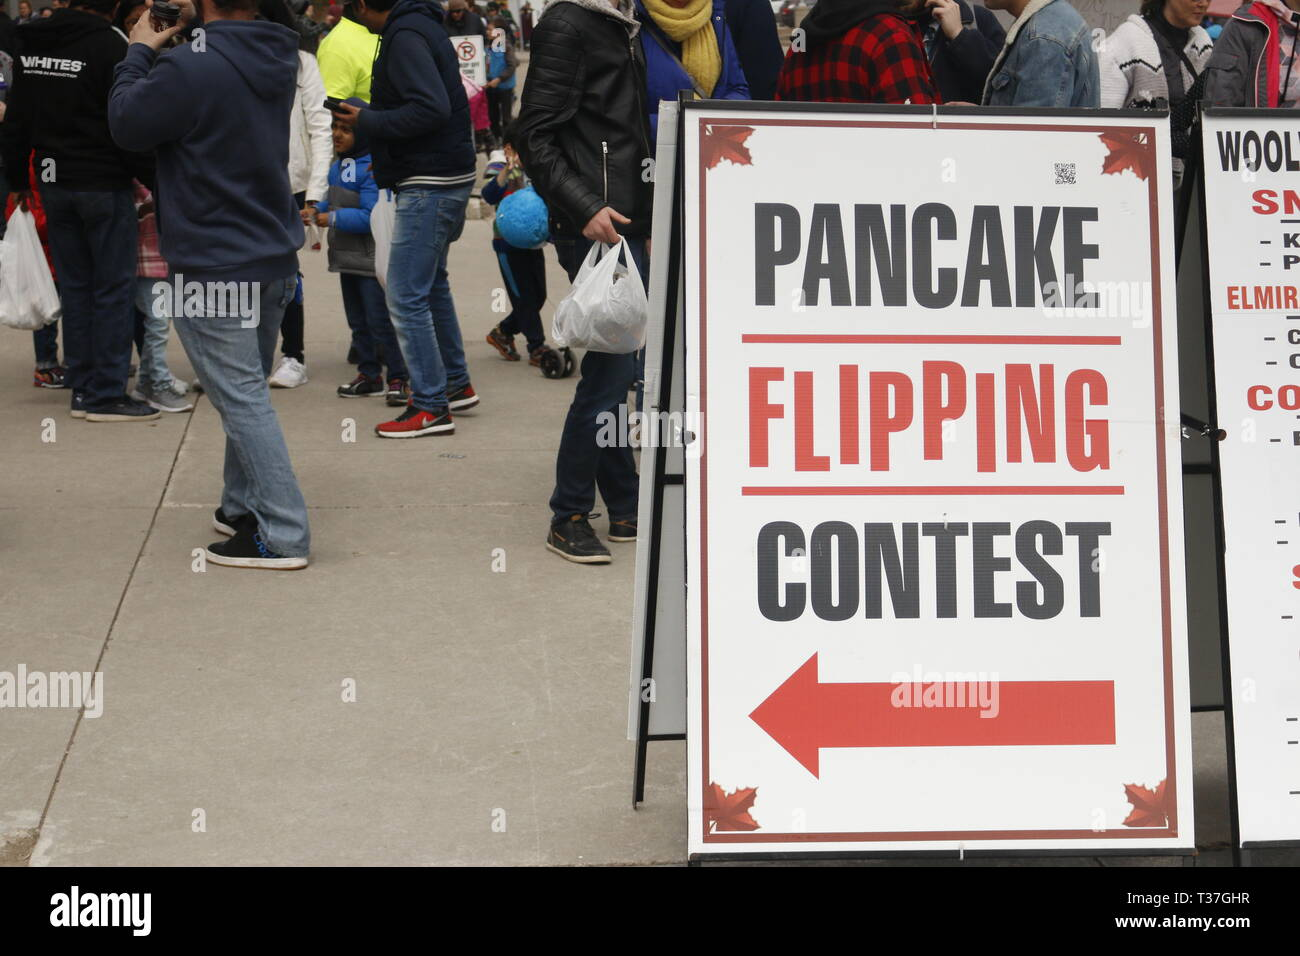 Elmira Canada, April 06 2019: editorial photograph of a pancake flipping contest sign. At the maple syrup festival there are lots of syrup themed fun - Stock Image